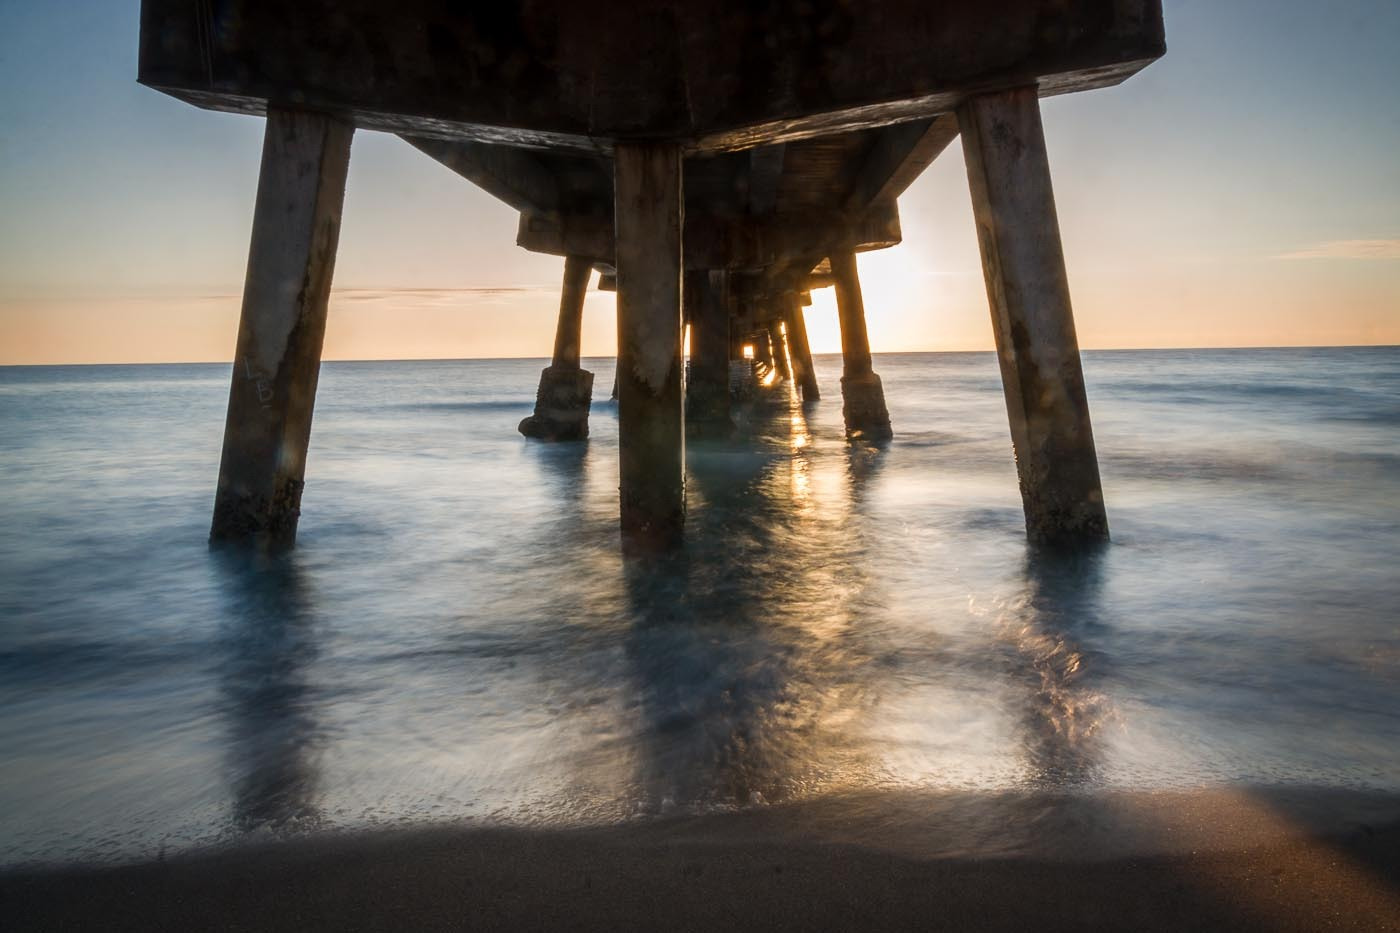 Photograph Sunrise under the Fishing Pier. by Ort Baldauf on 500px